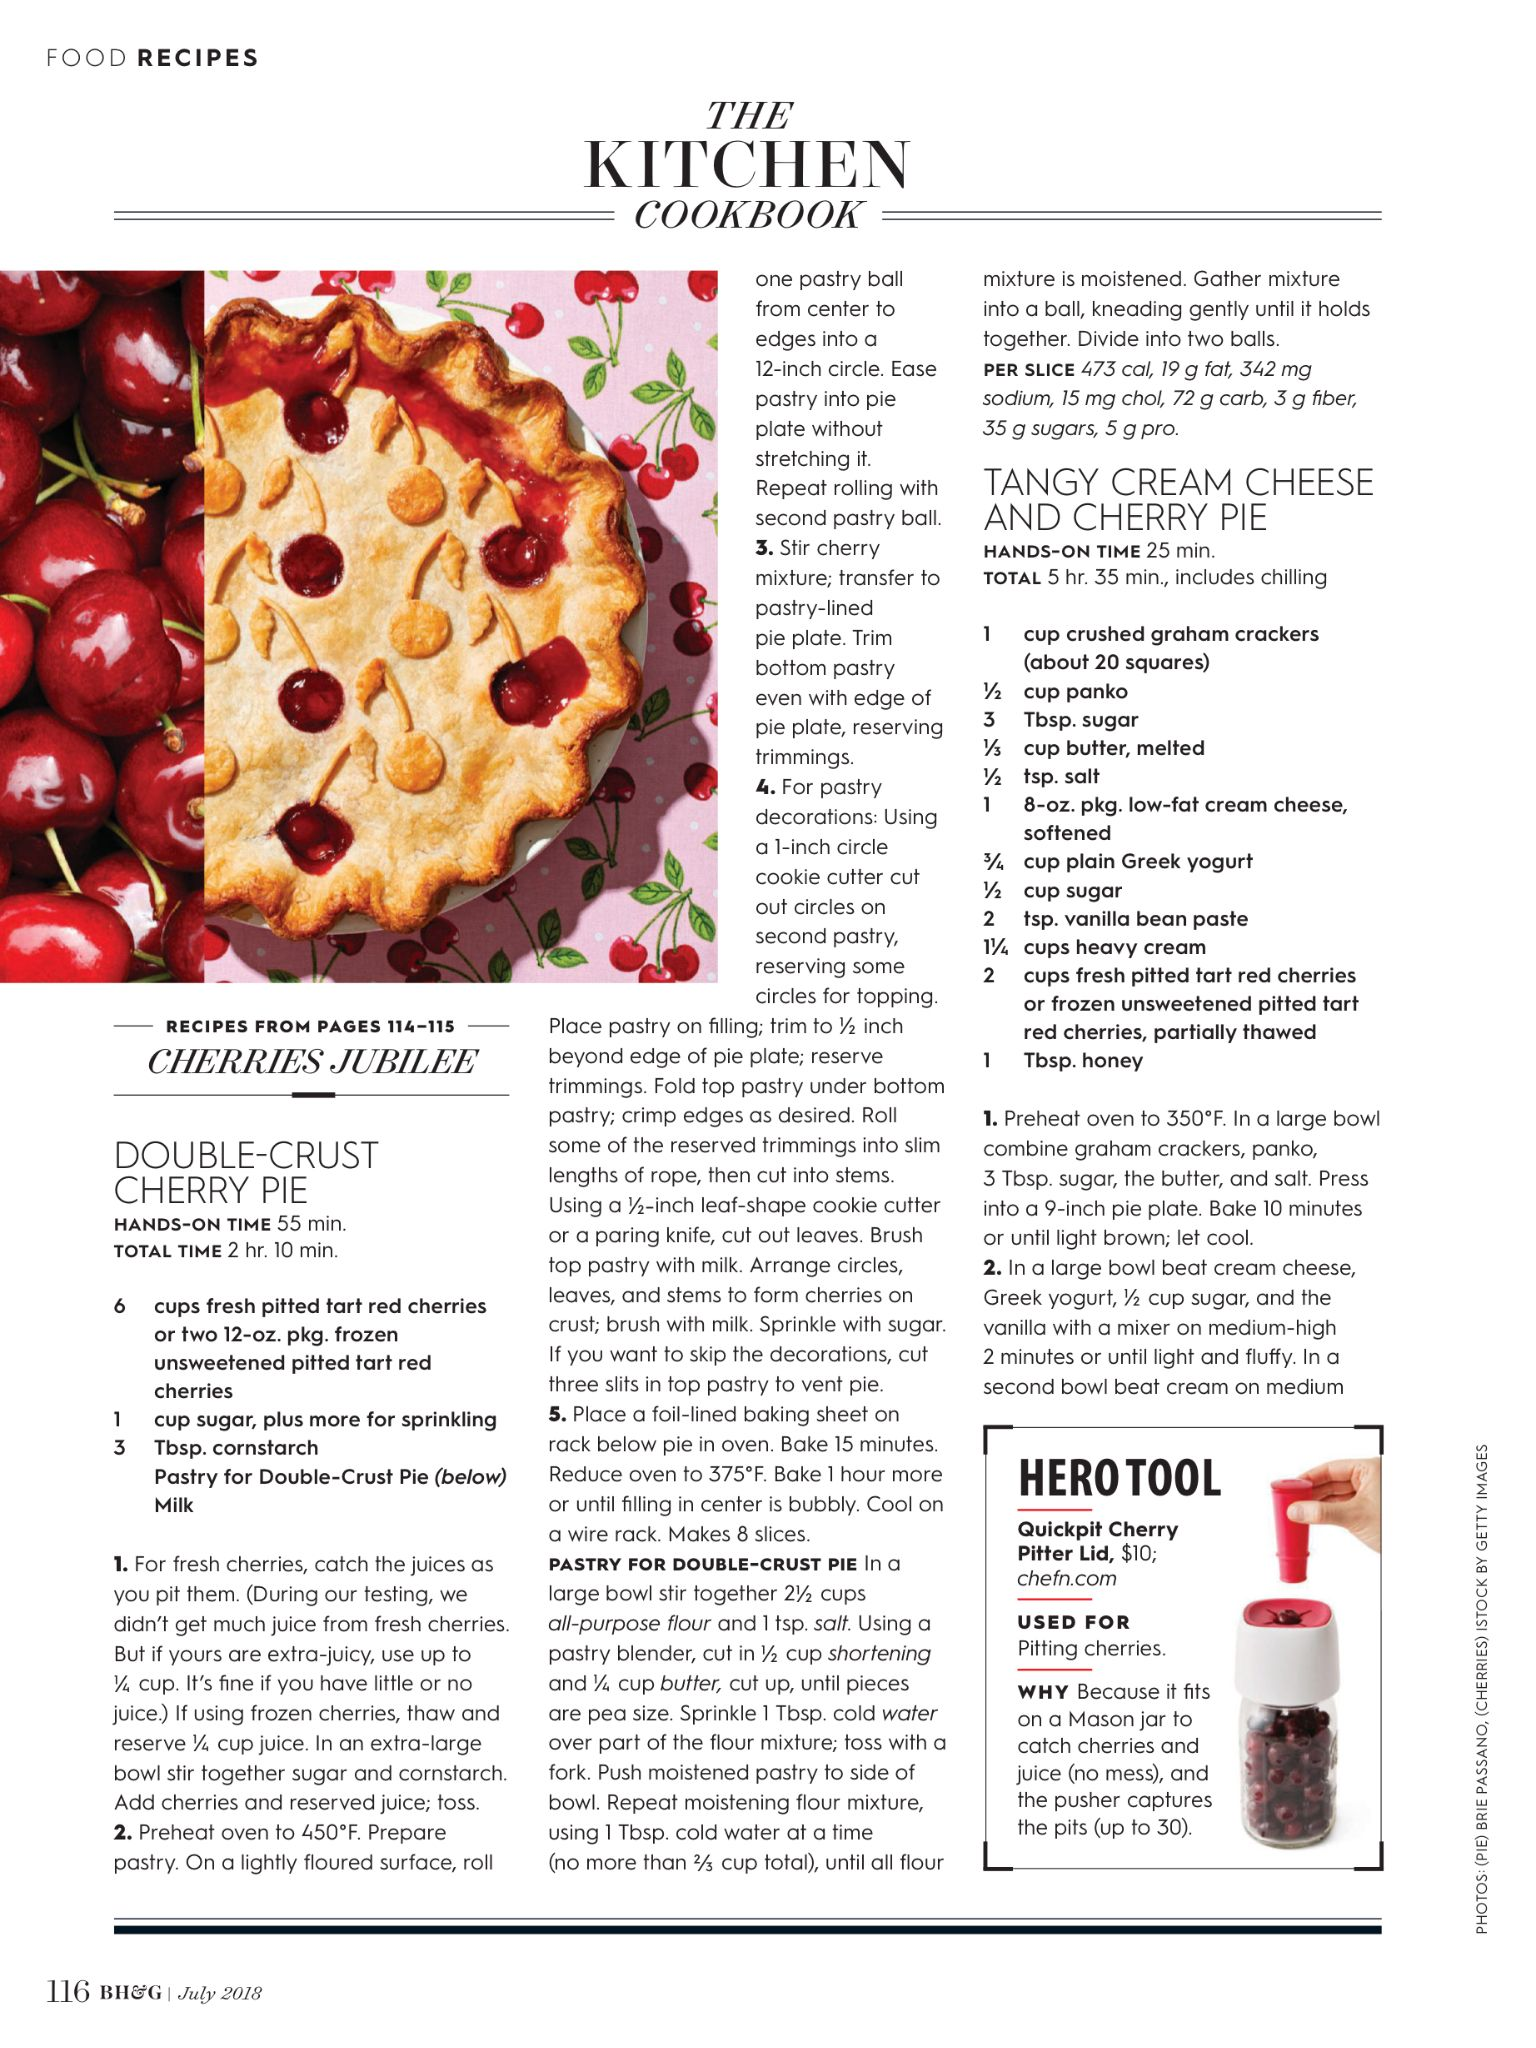 aaf42af605e0e4263cc6c79a7f4ec8b6 - Cherry Tomato Pie Better Homes And Gardens